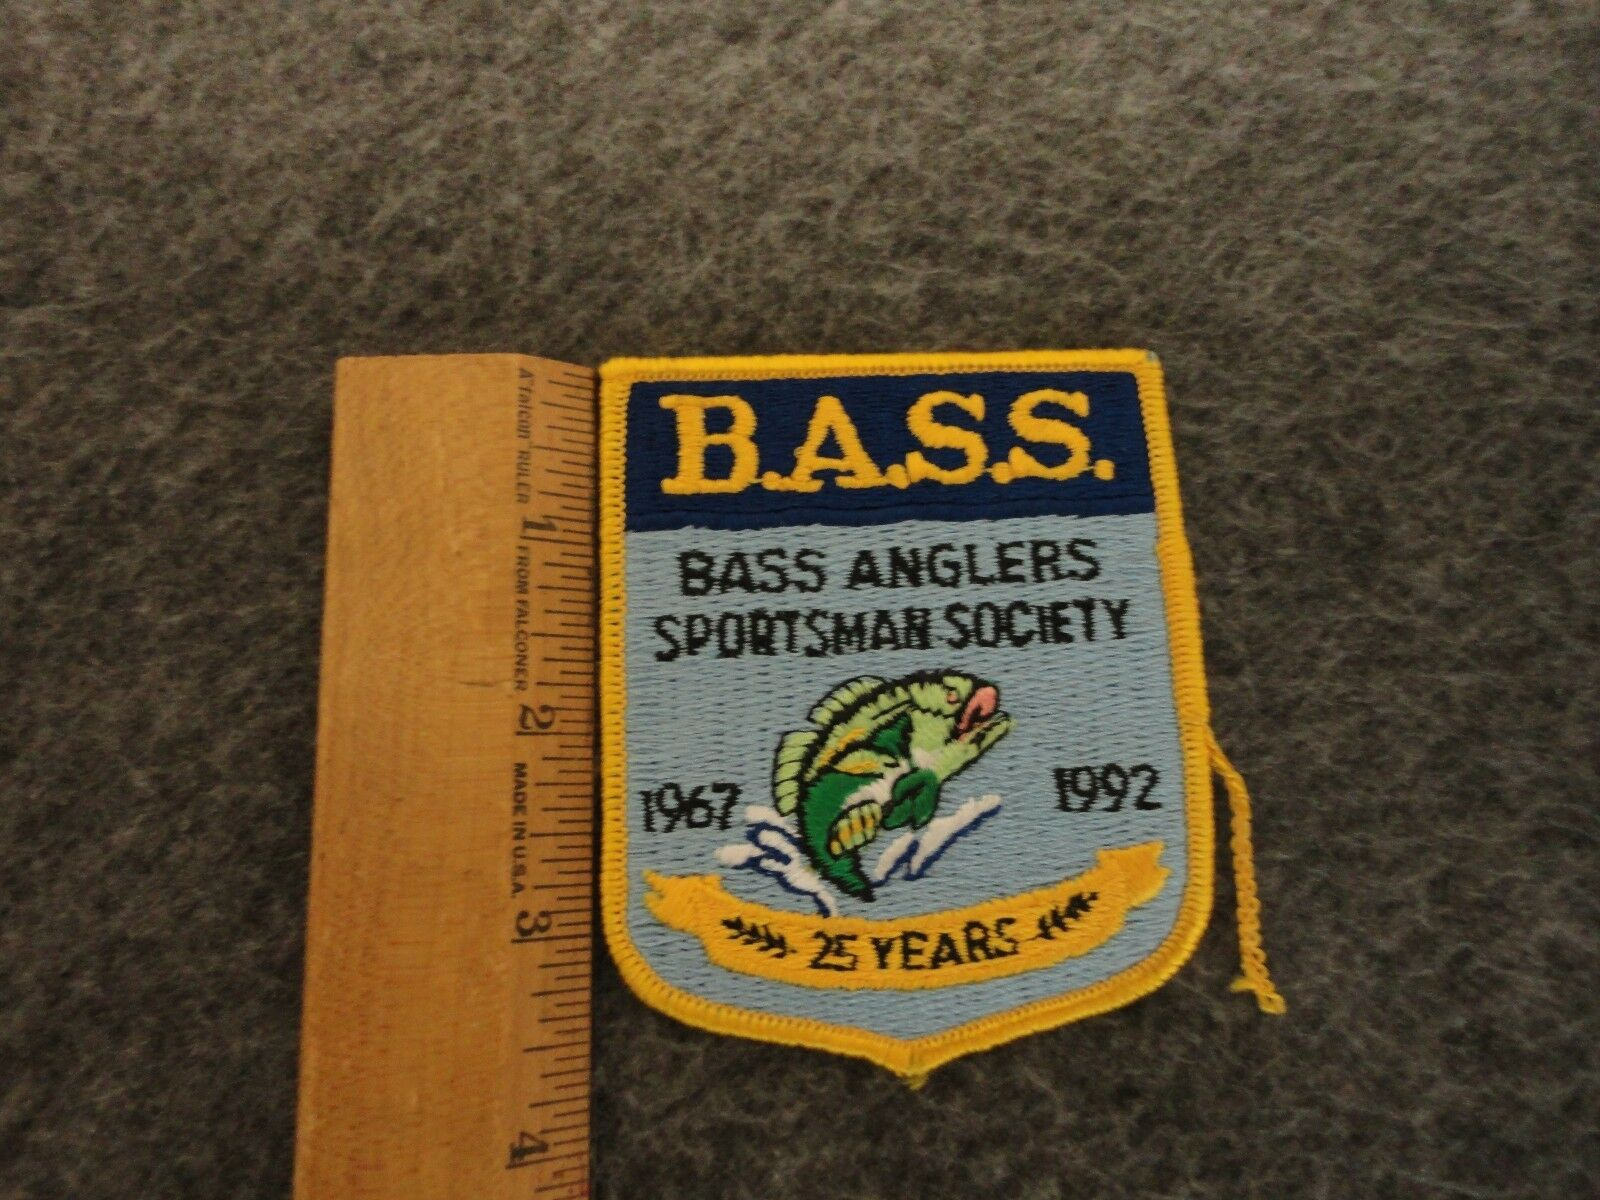 VINTAGE BASS ANGLER/FISHING MESH TRUCKER SNAPBACK HAT 1967-1992 PATCH - ONE SIZE - $24.95